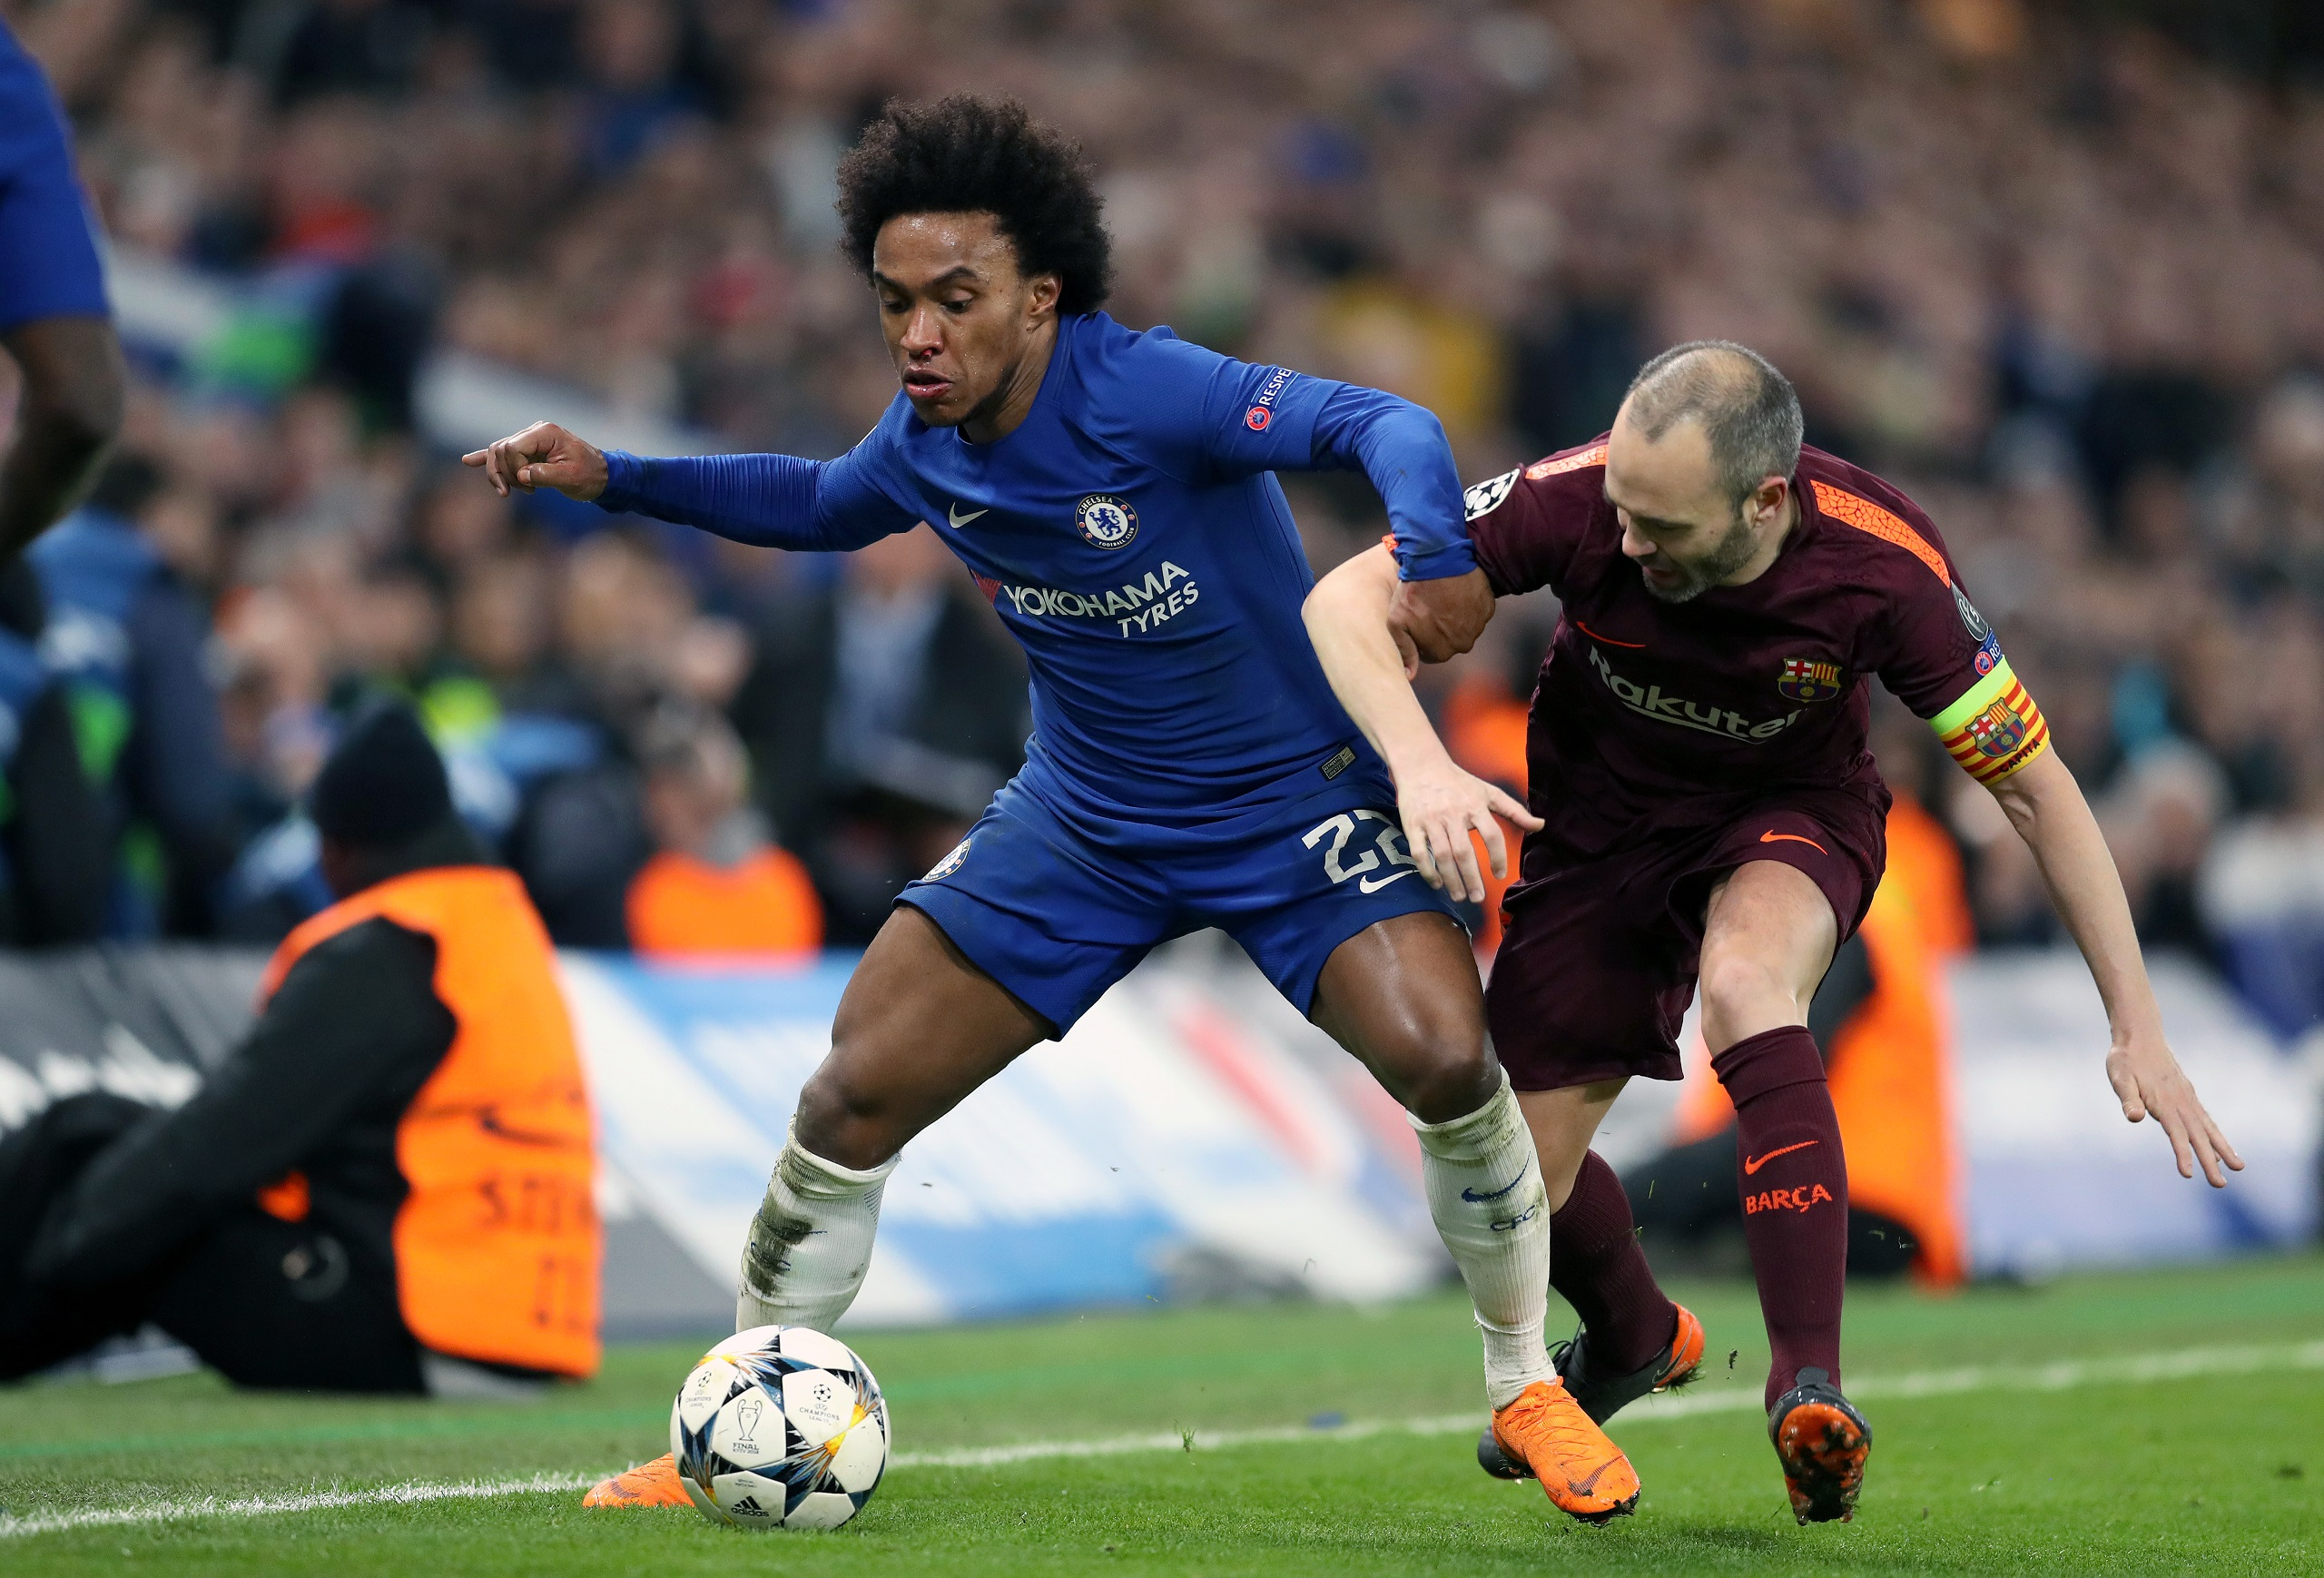 Football | Europa League Round of 32 first leg | Preview and